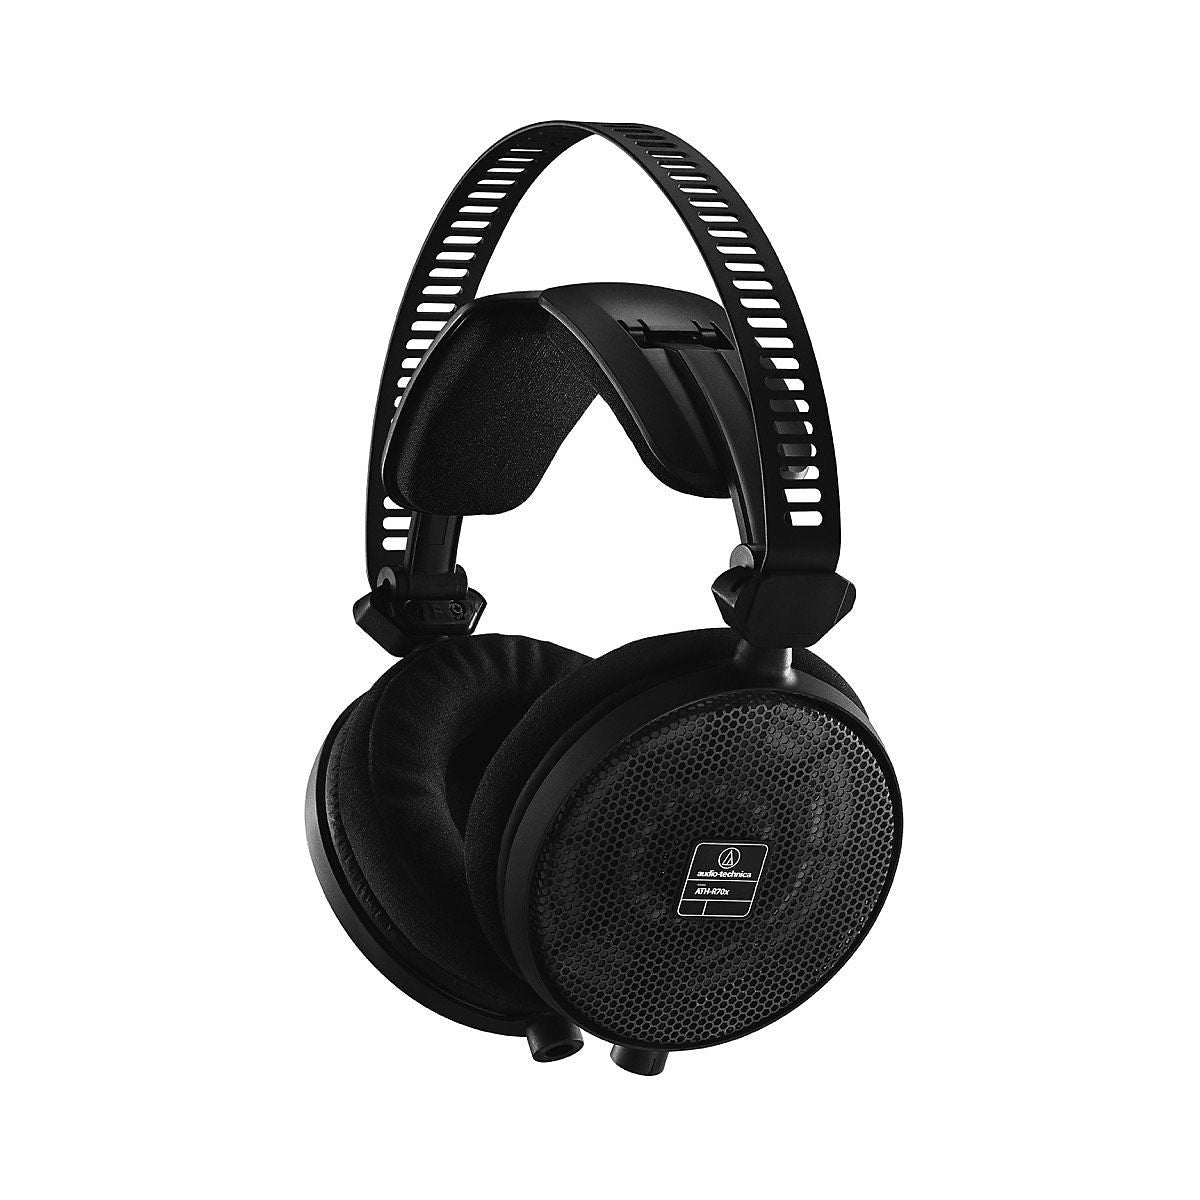 Audio-Technica ATH-R70x Open-Back Headphones